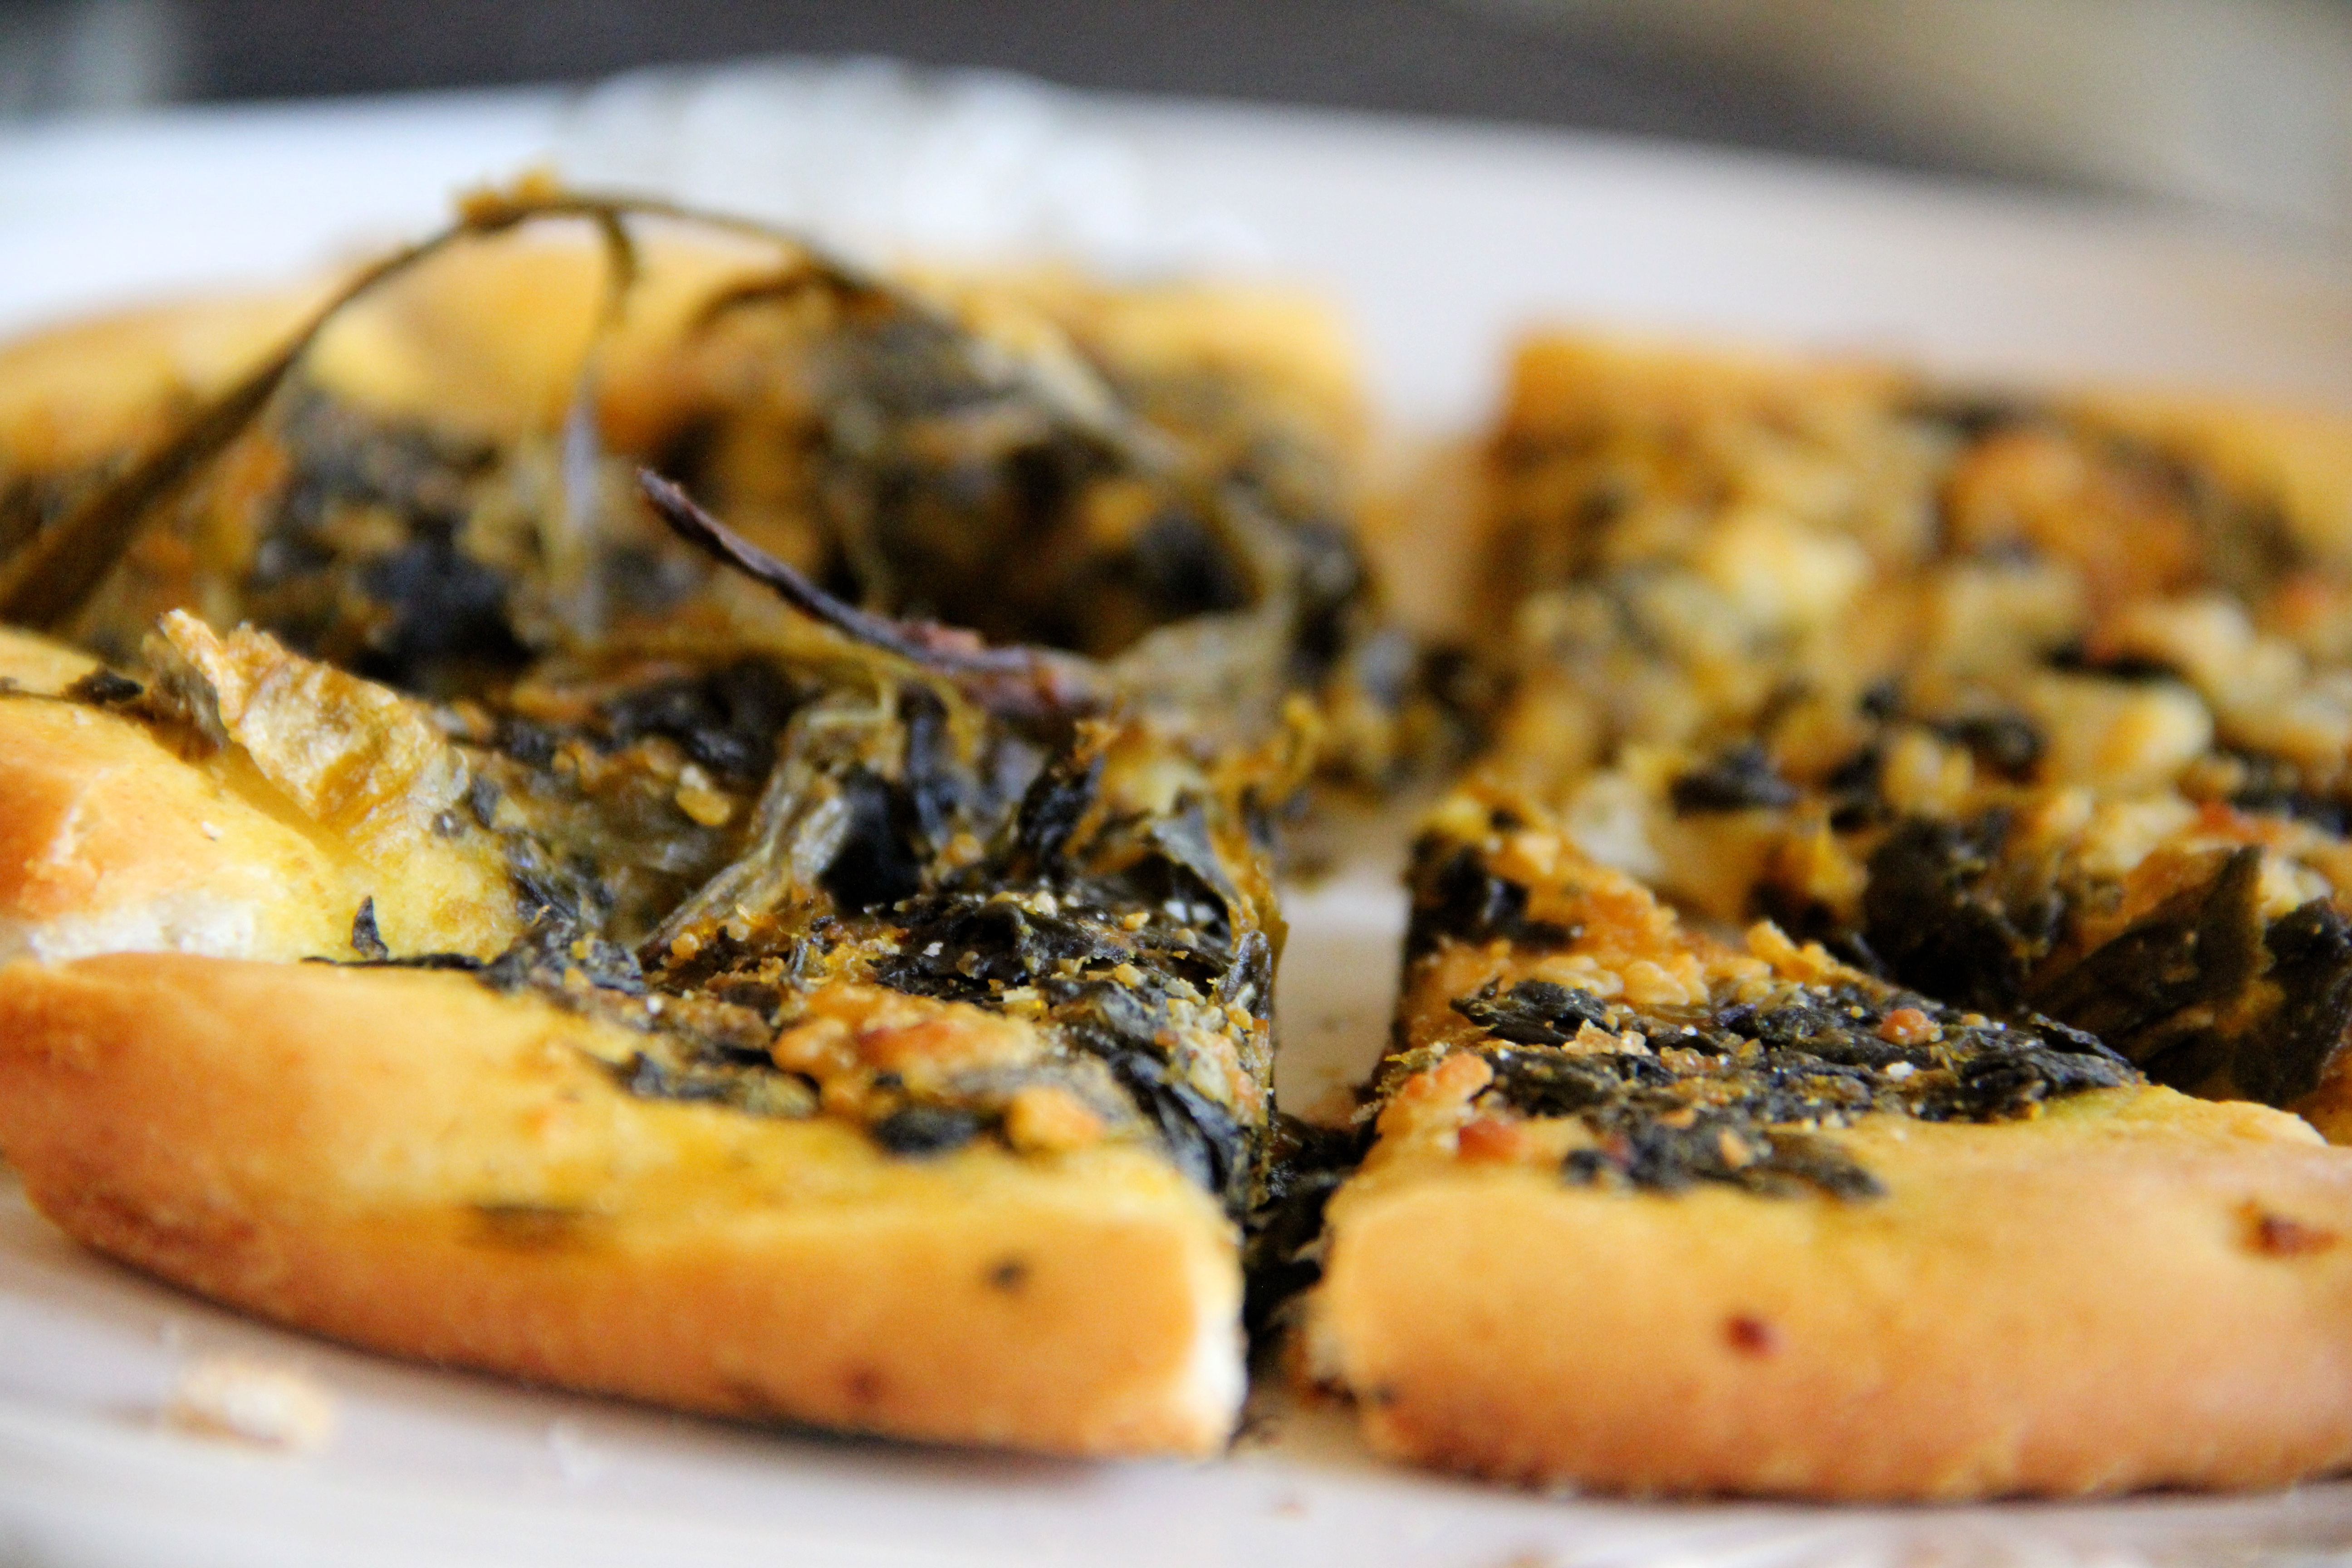 Kermanigs Spinach Focaccia Reviewed By Skinny Girl Standard A Low Calorie Food Blog